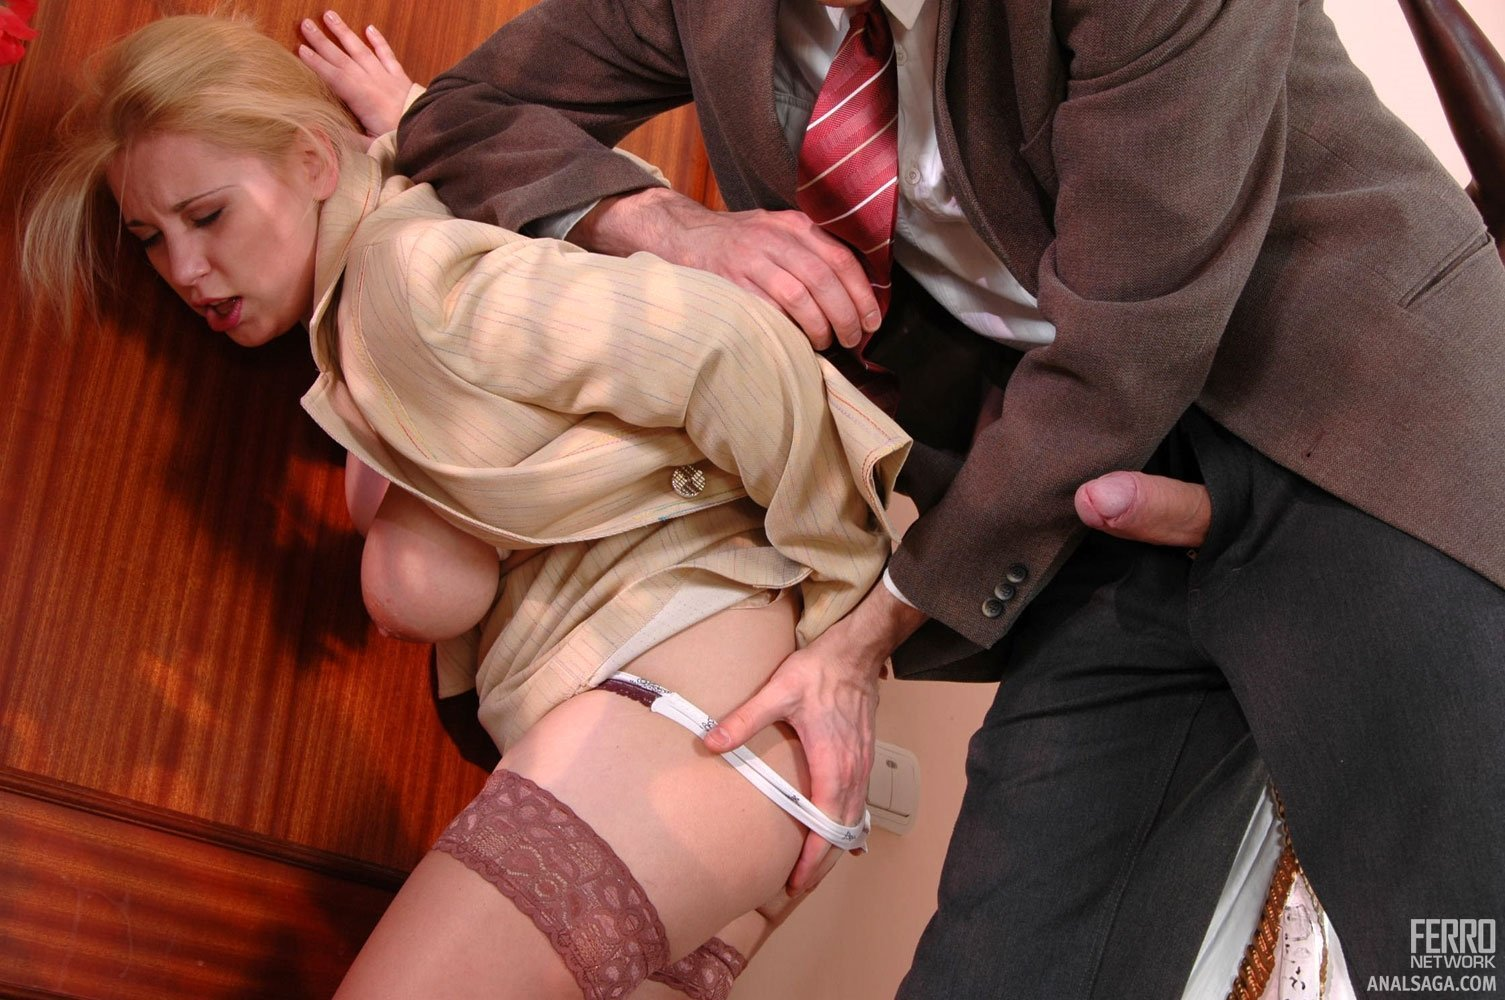 Pantyhose jobs rebecca govard blonde temptress going for face